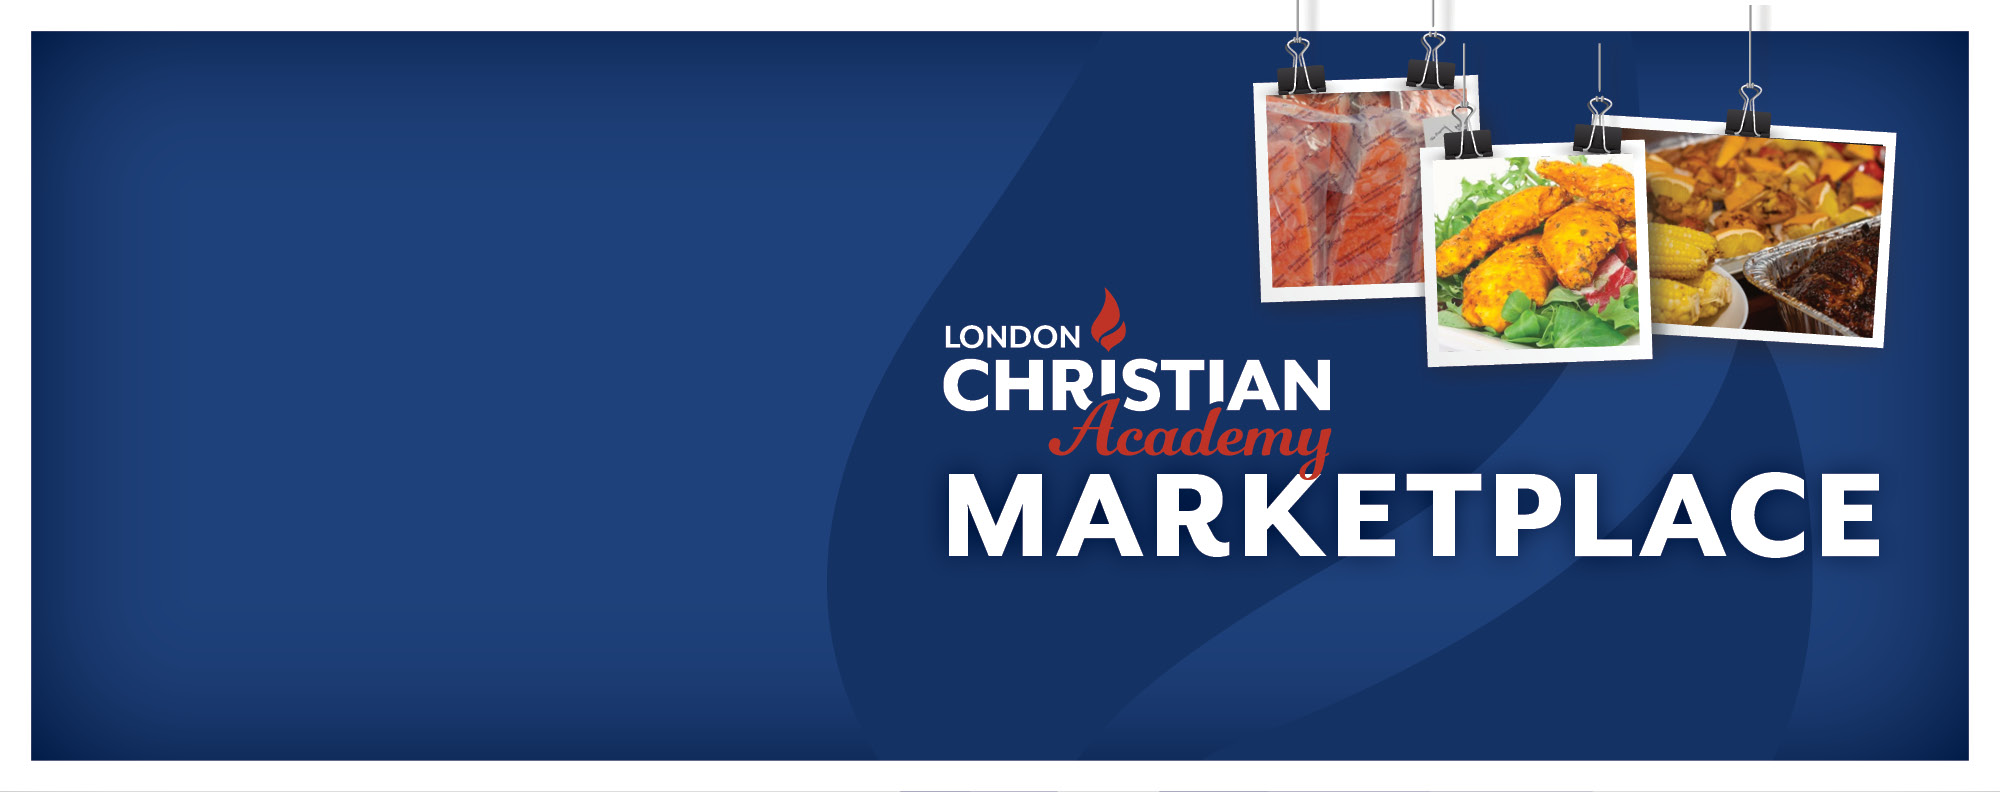 LCA Marketplace LET'S FUNDRAISE TOGETHER with some of our Christmas Market Vendors offering special deals for LCA families & Friends!  CLICK HERE to See Our Current Specials